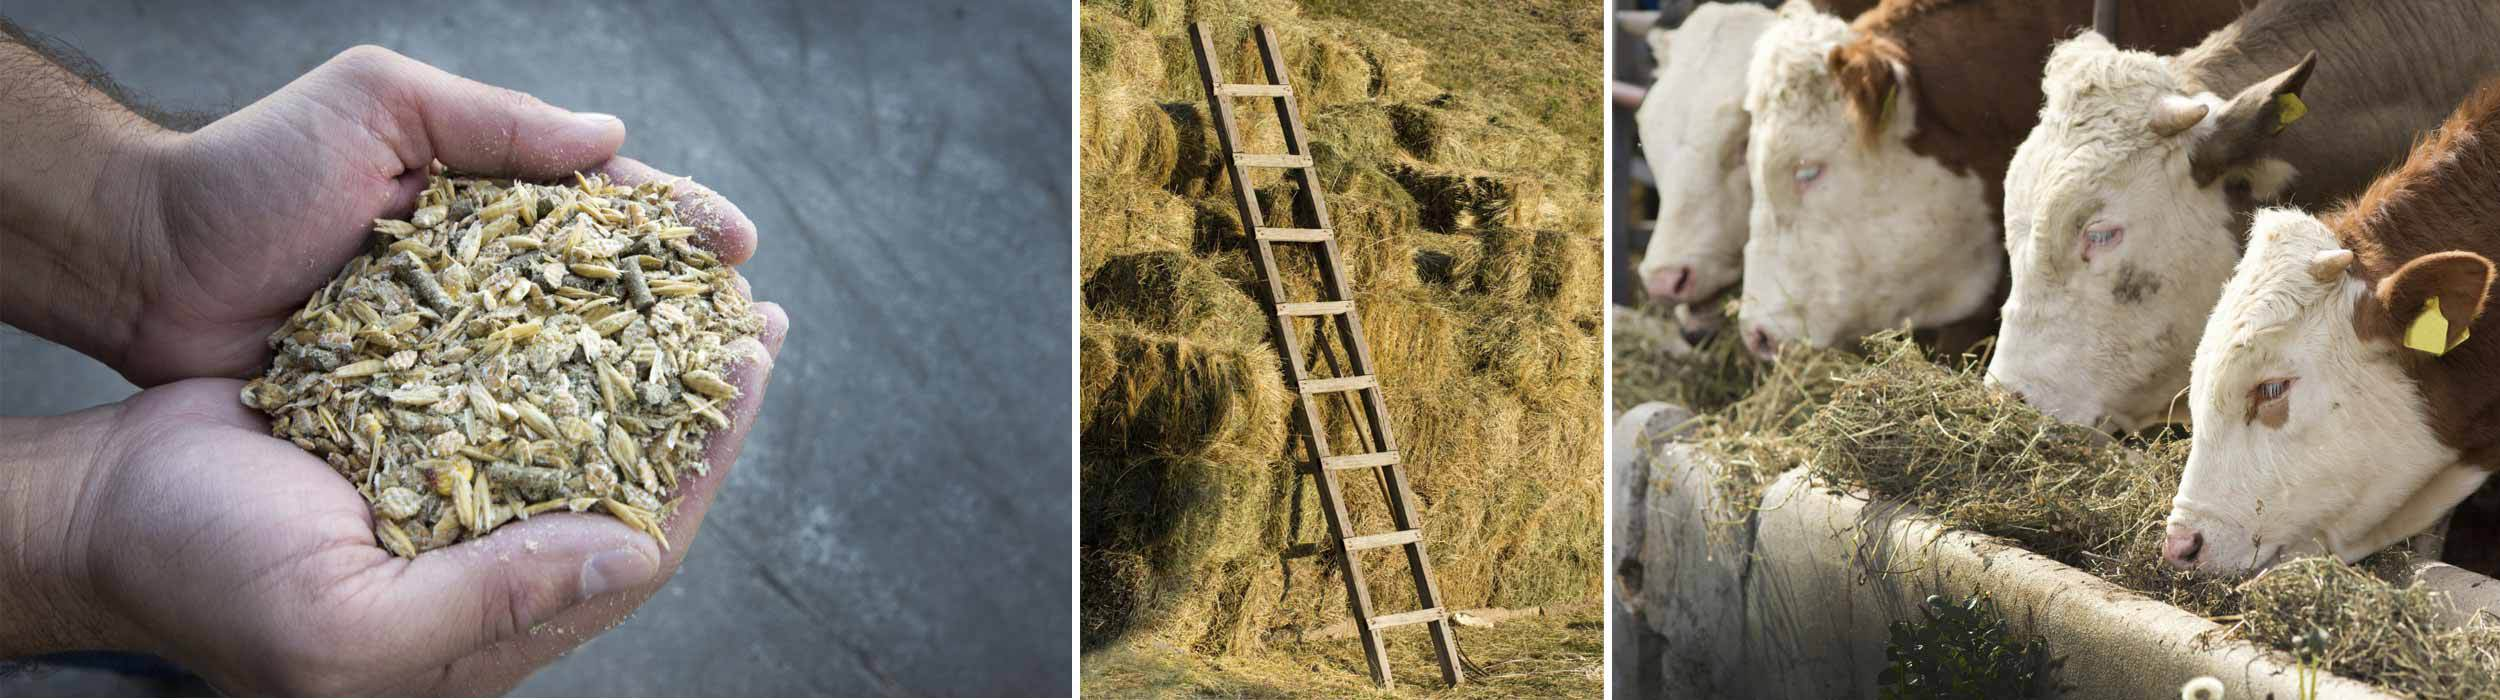 Farm feeds, ladder and a haystack and cows eating farm feeds